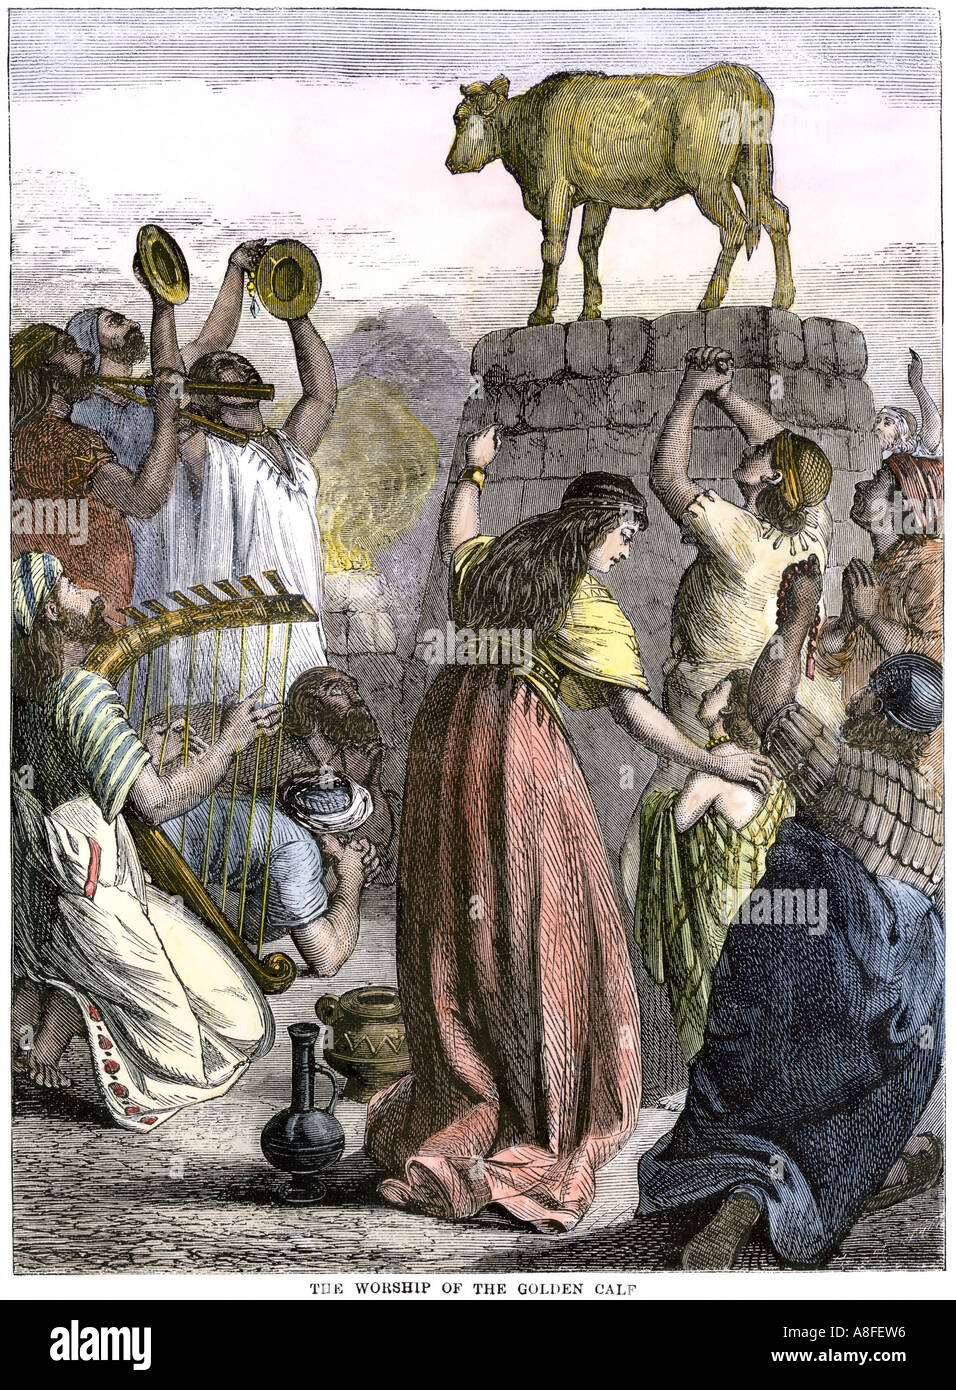 Worship of a golden calf by the Israelites in the time of Moses. Hand-colored woodcut - Stock Image